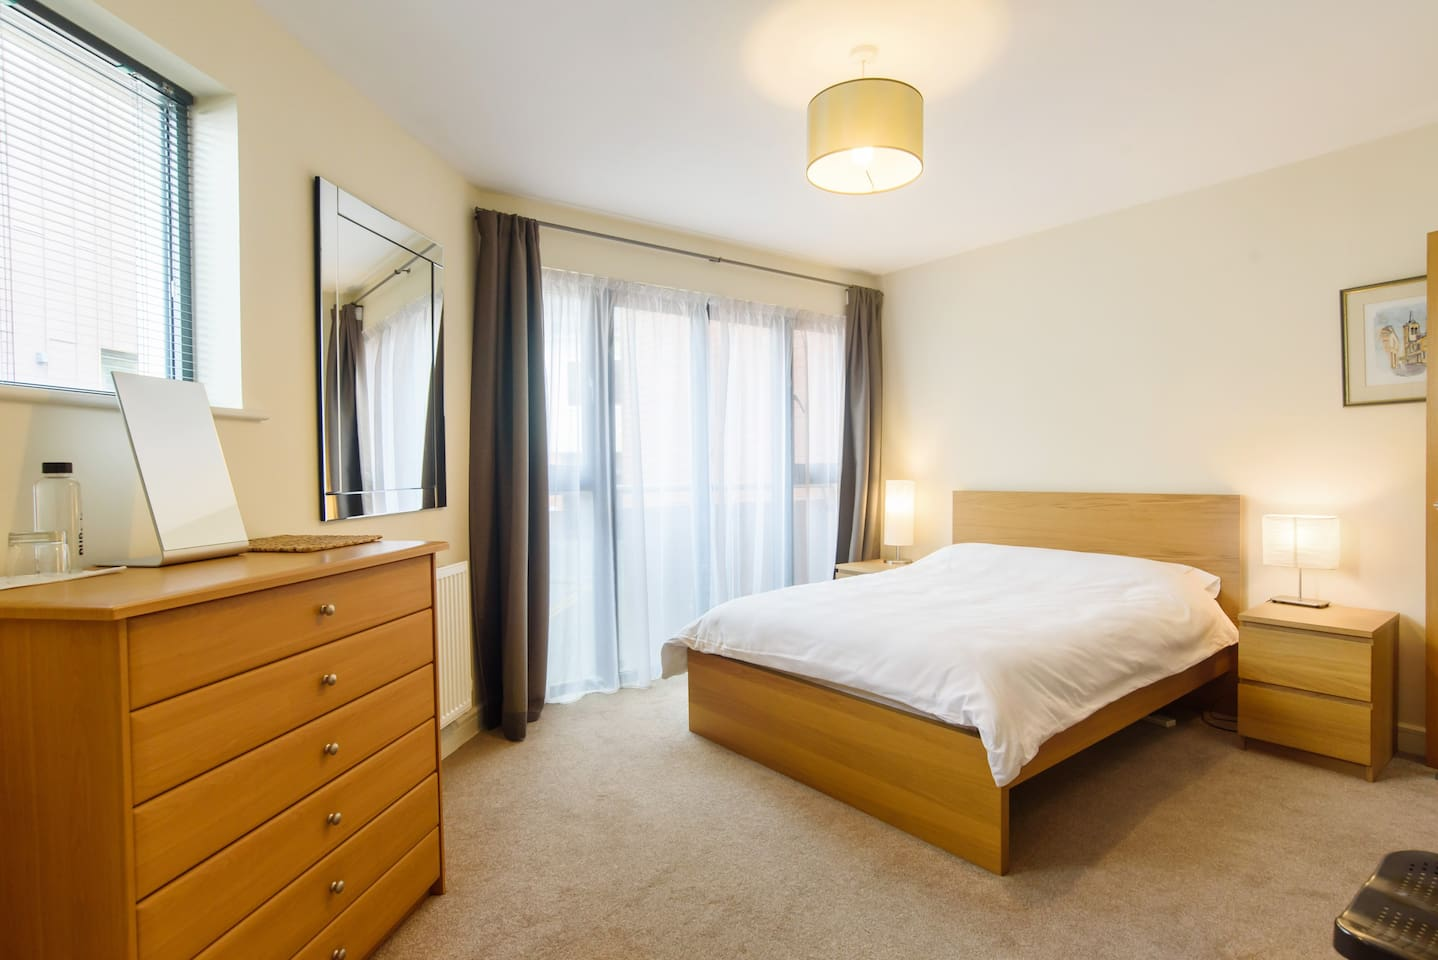 Large, bright double room. 100% cotton linen, starched and pressed. Private ensuite with bath. Peaceful street with no through traffic.